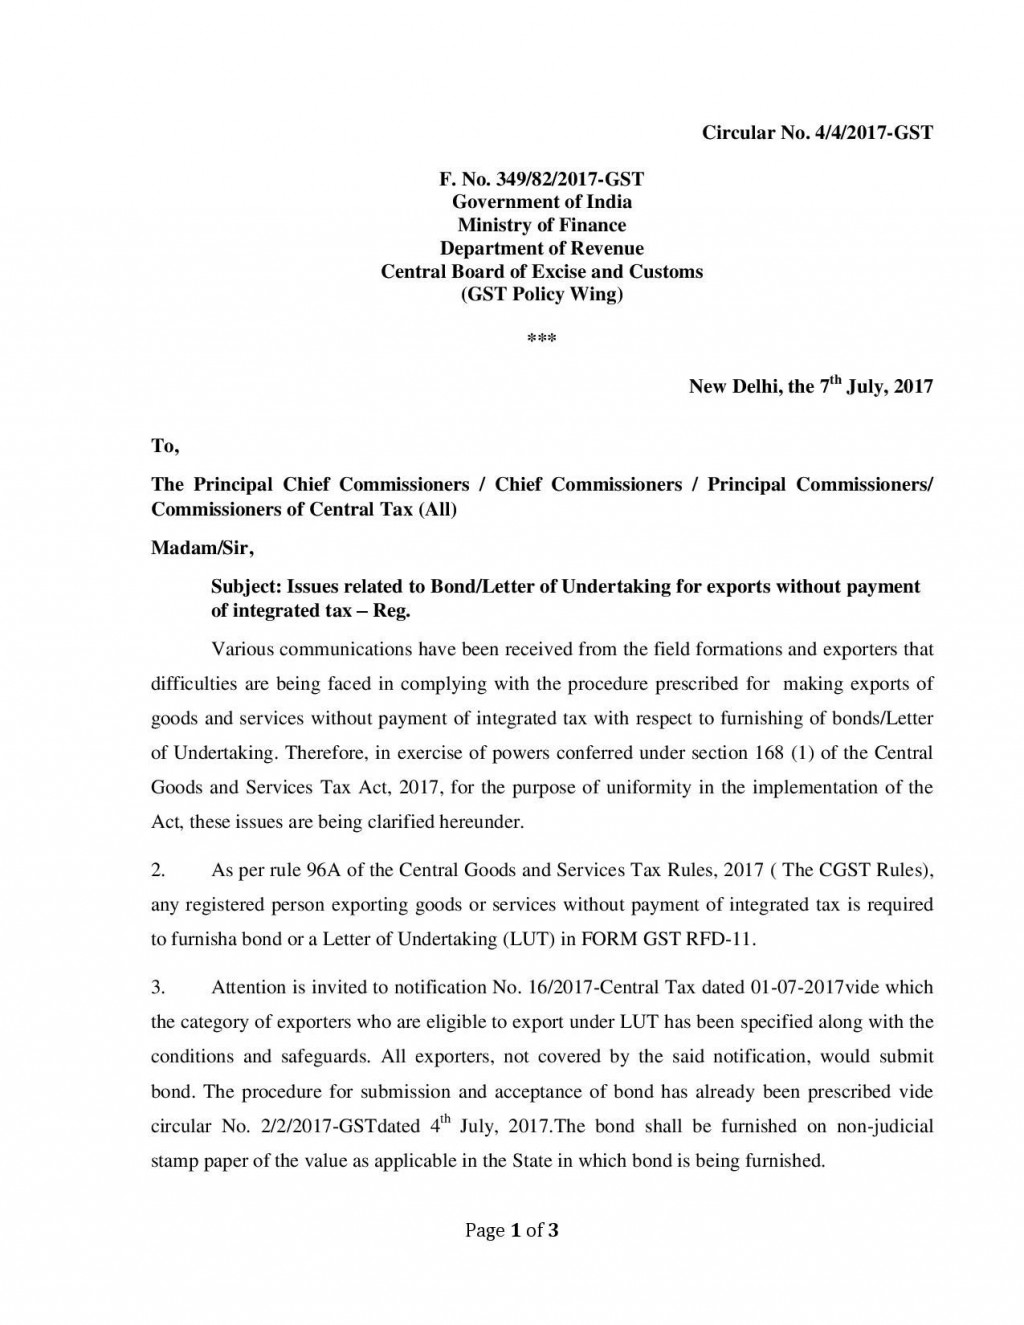 009 Dreaded Letter Of Understanding Format In Gst Photo Large